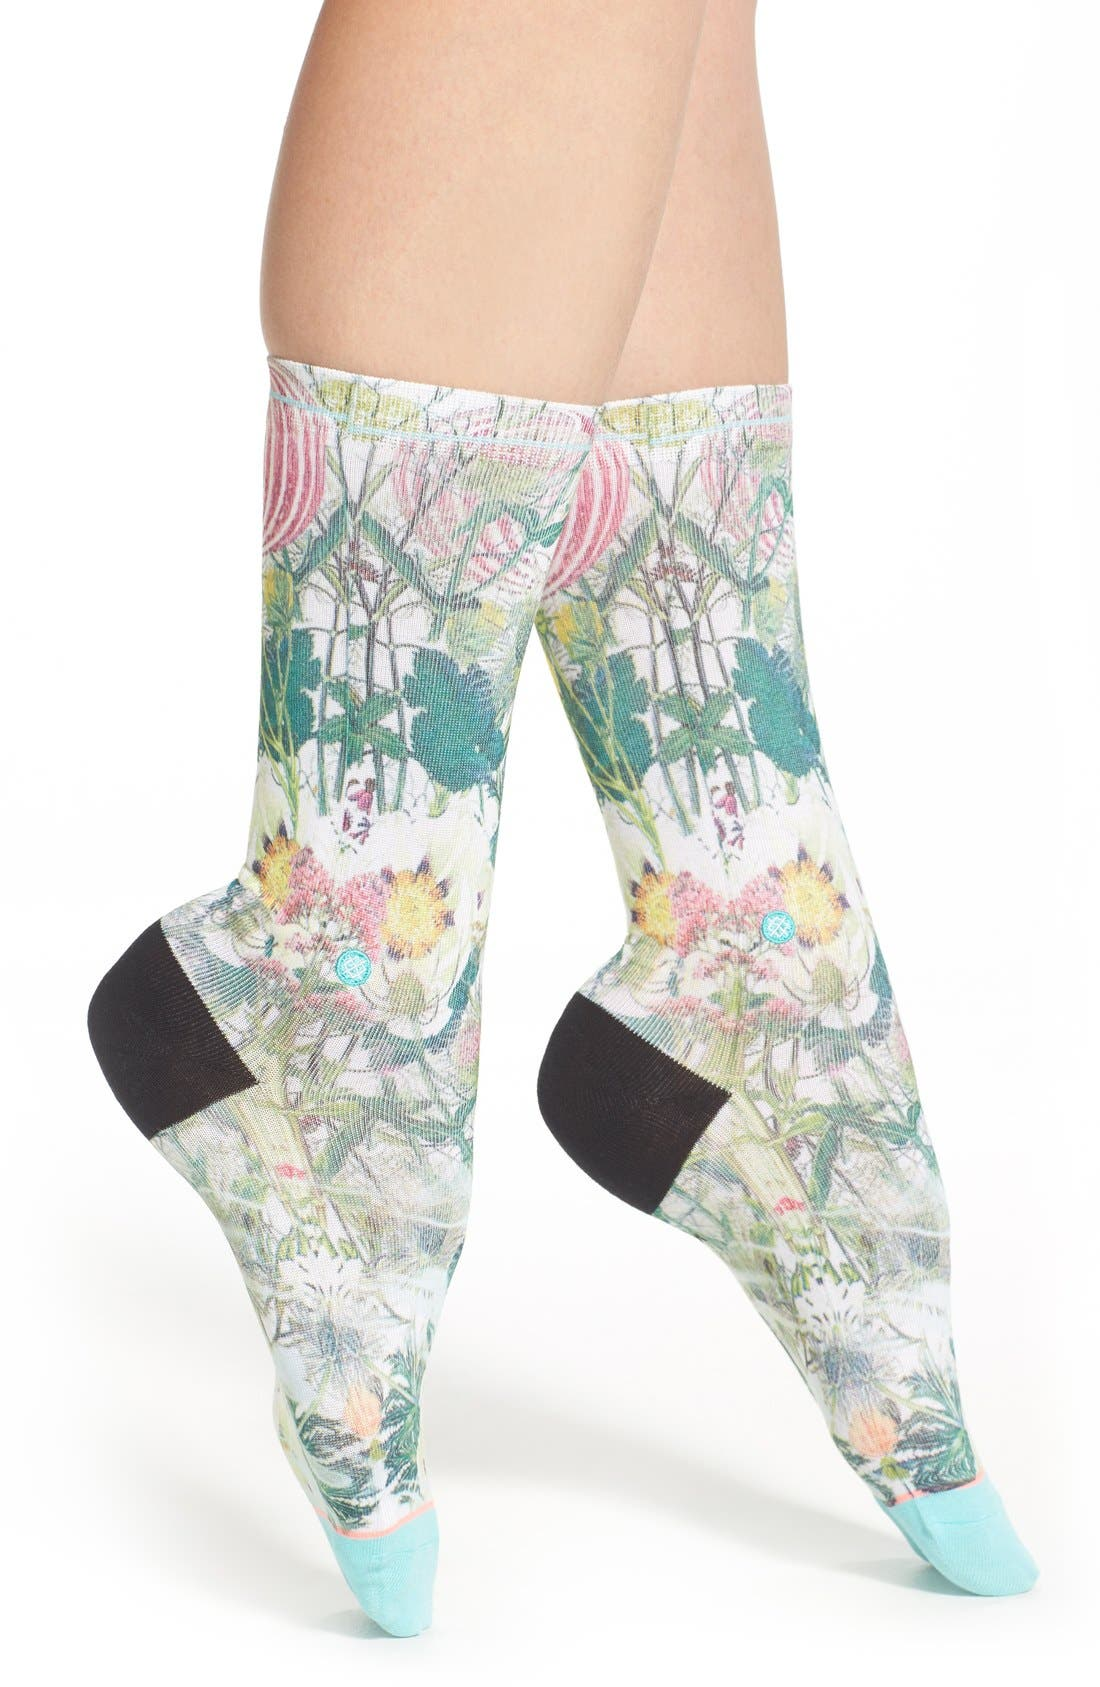 Alternate Image 1 Selected - Stance 'Chaotic Flower' Socks